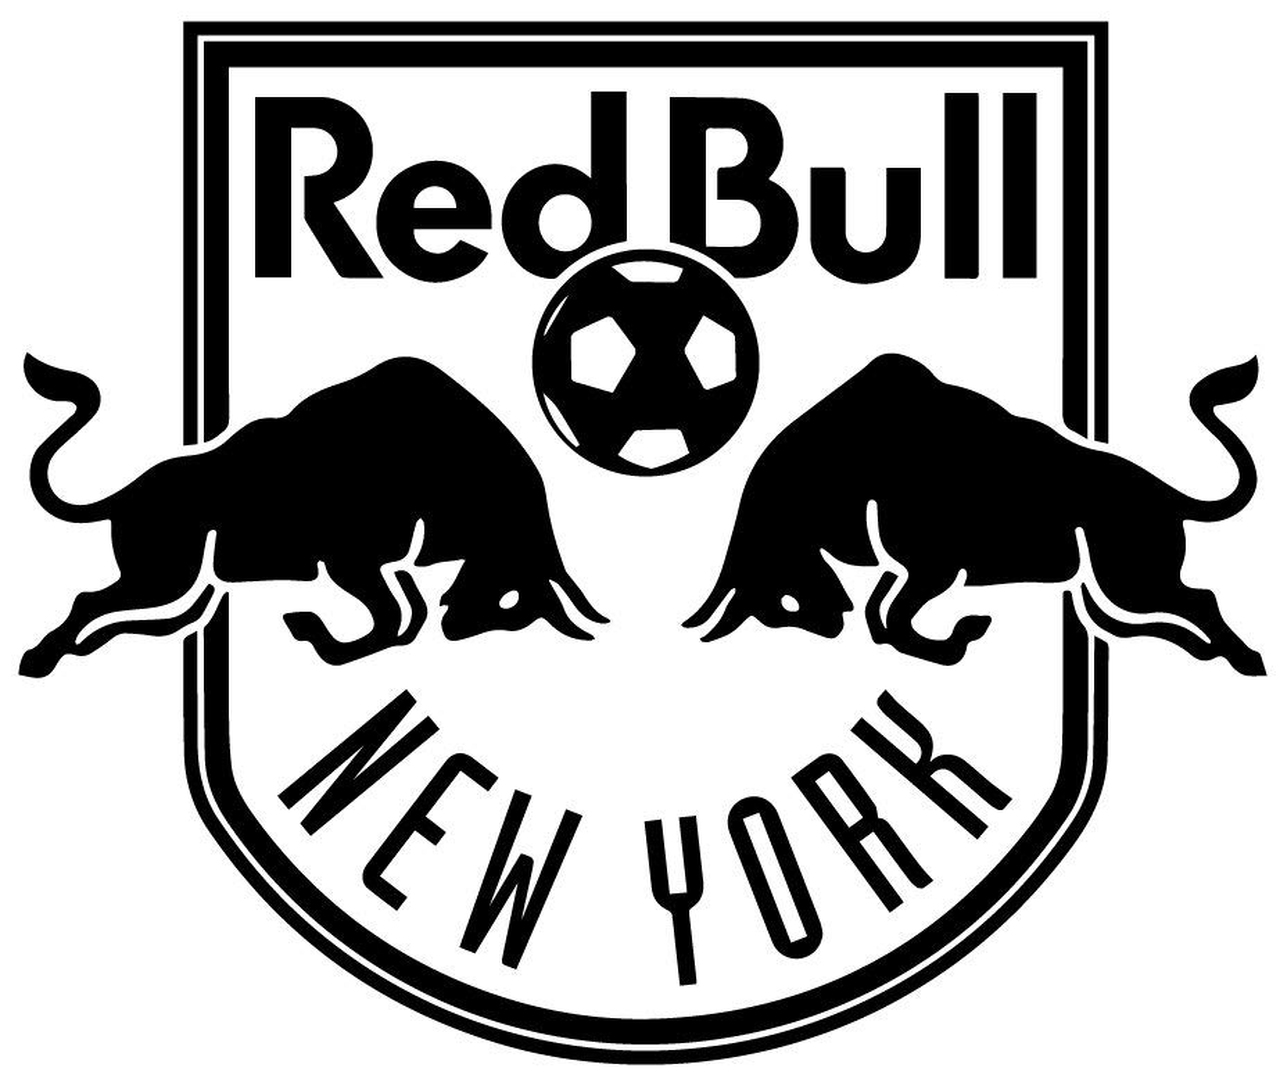 New york red bulls clipart picture royalty free New York Red Bulls Mls Vinyl Decal picture royalty free